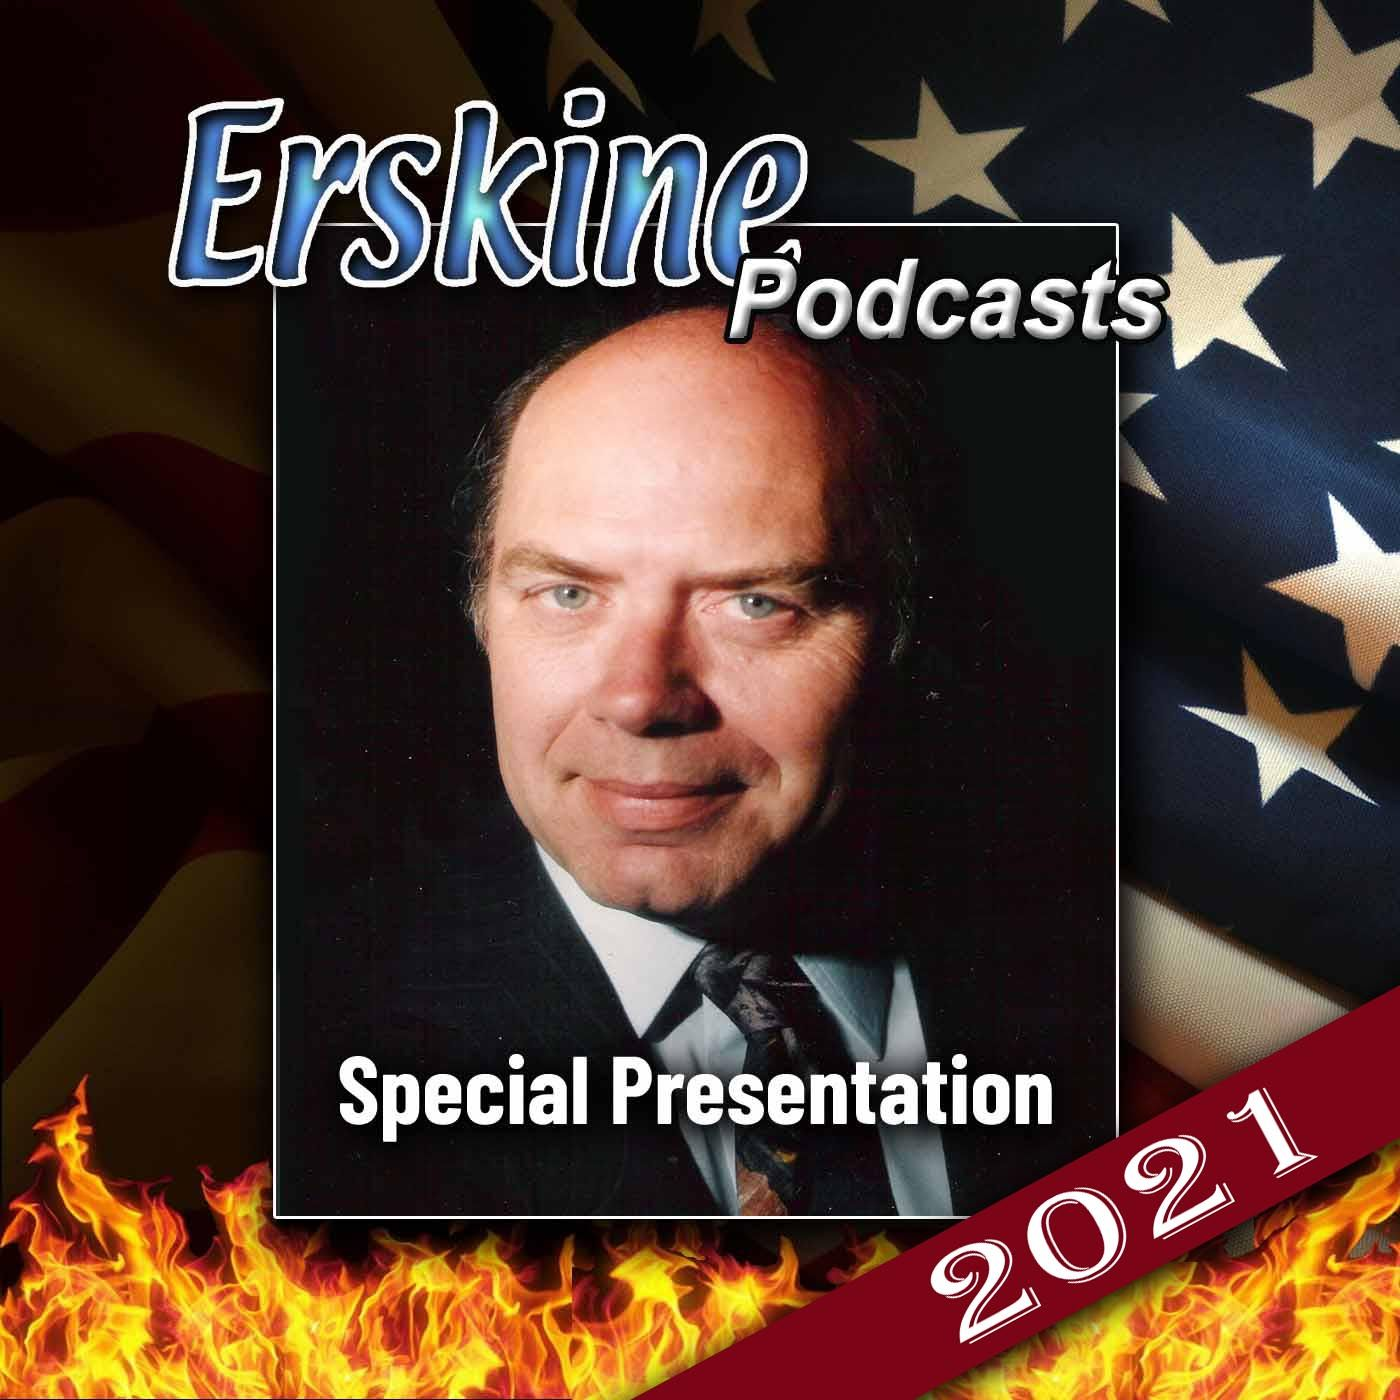 Erskine with his thoughts on 2020 and the year ahead. God help America (ep#1-2-21)